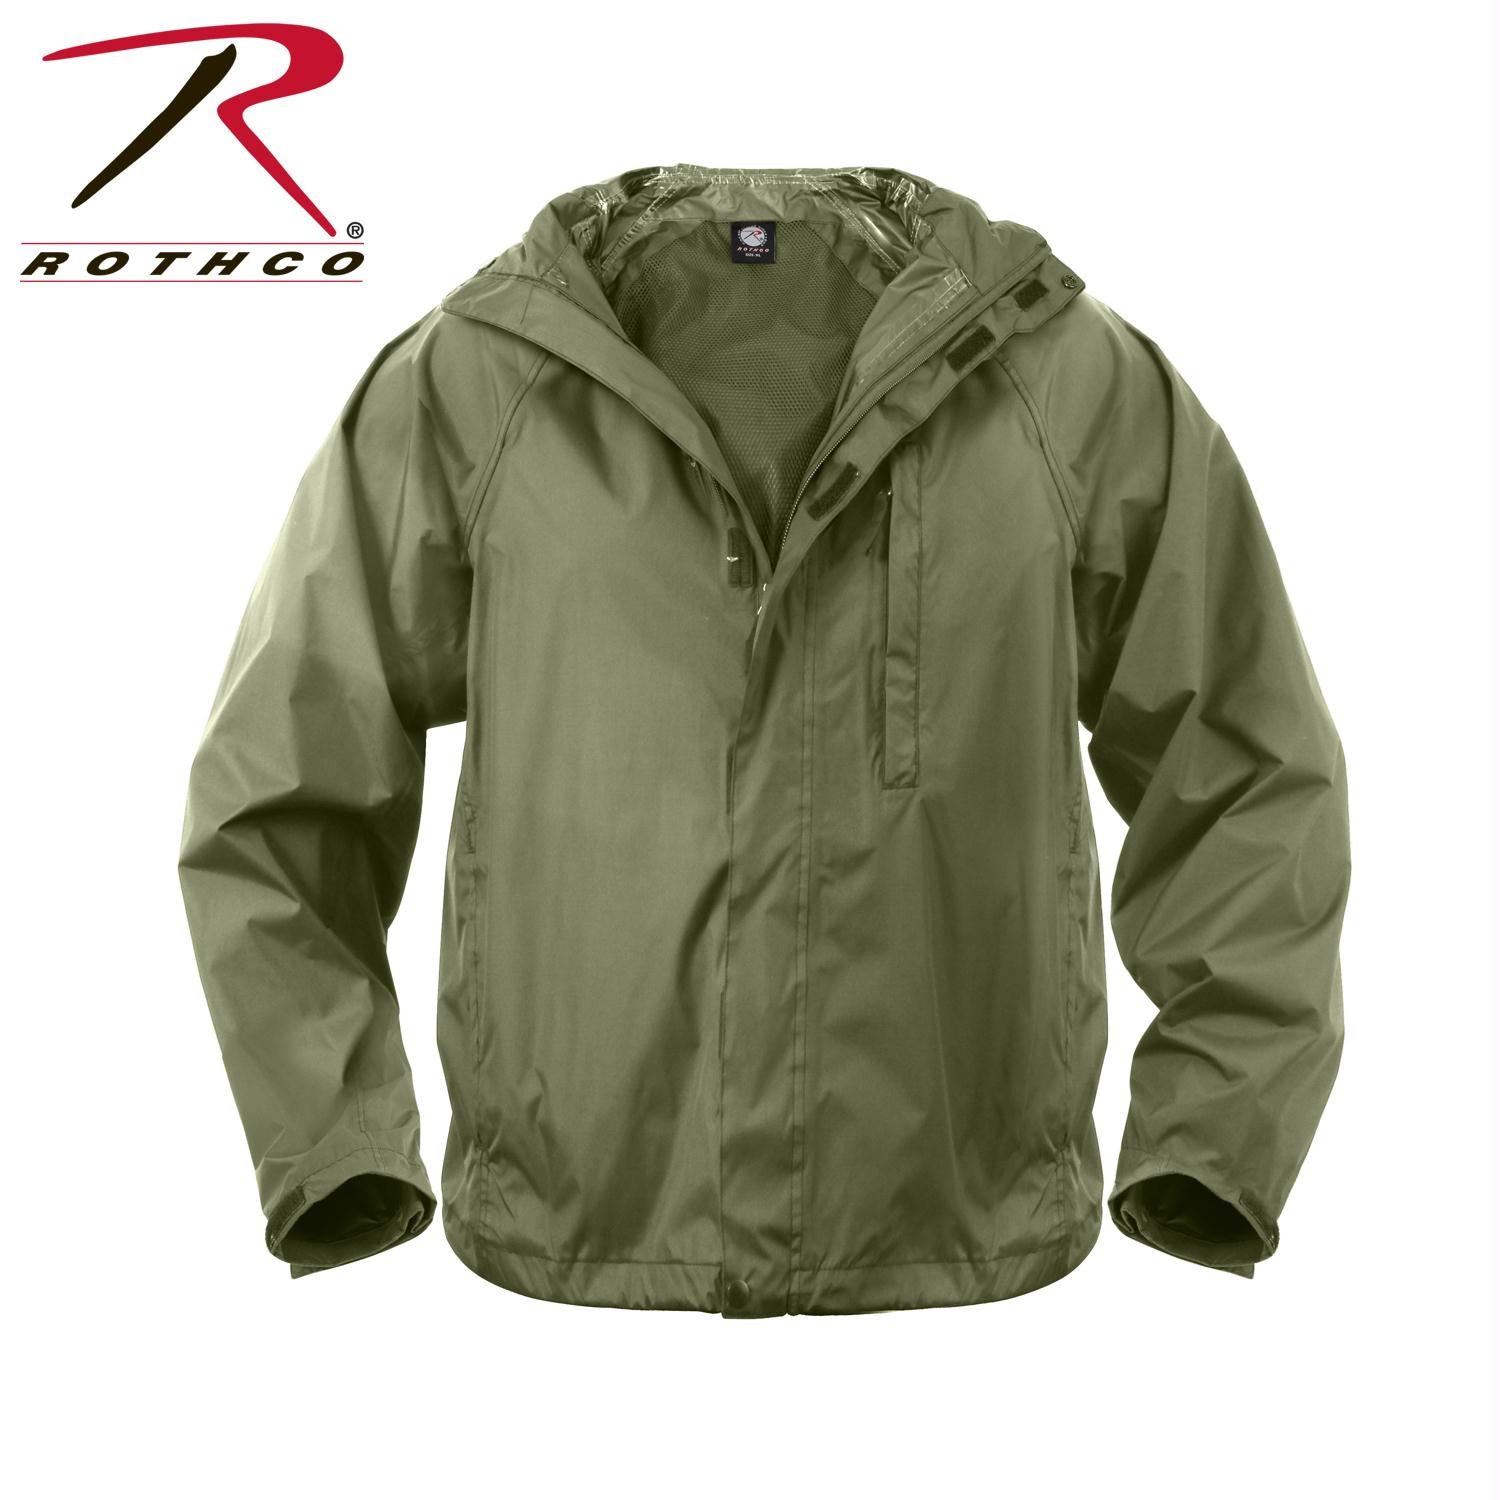 Rothco Packable Rain Jacket - Olive Drab / L